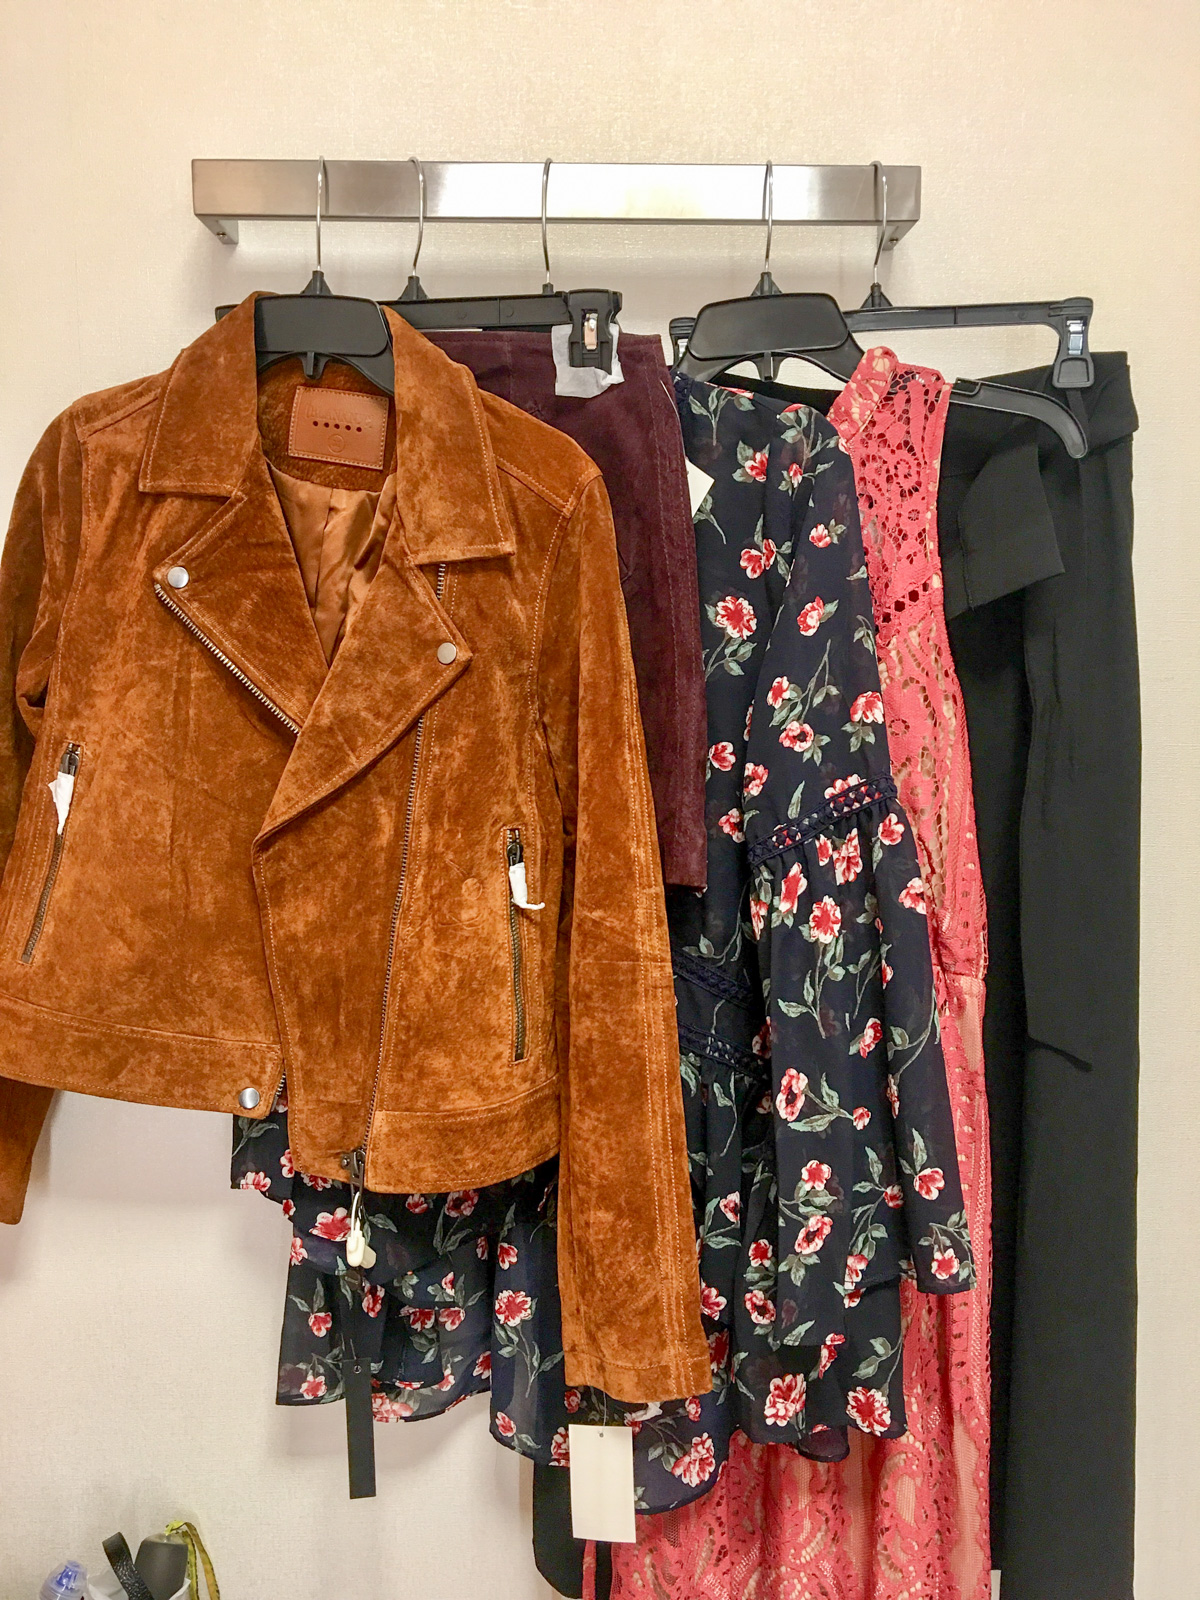 Bows & Sequins Guide to Shopping the Nordstrom Anniversary Sale | What to Buy: Moto Jacket, Suede Skirt, Floral Blouse, Lace Dress